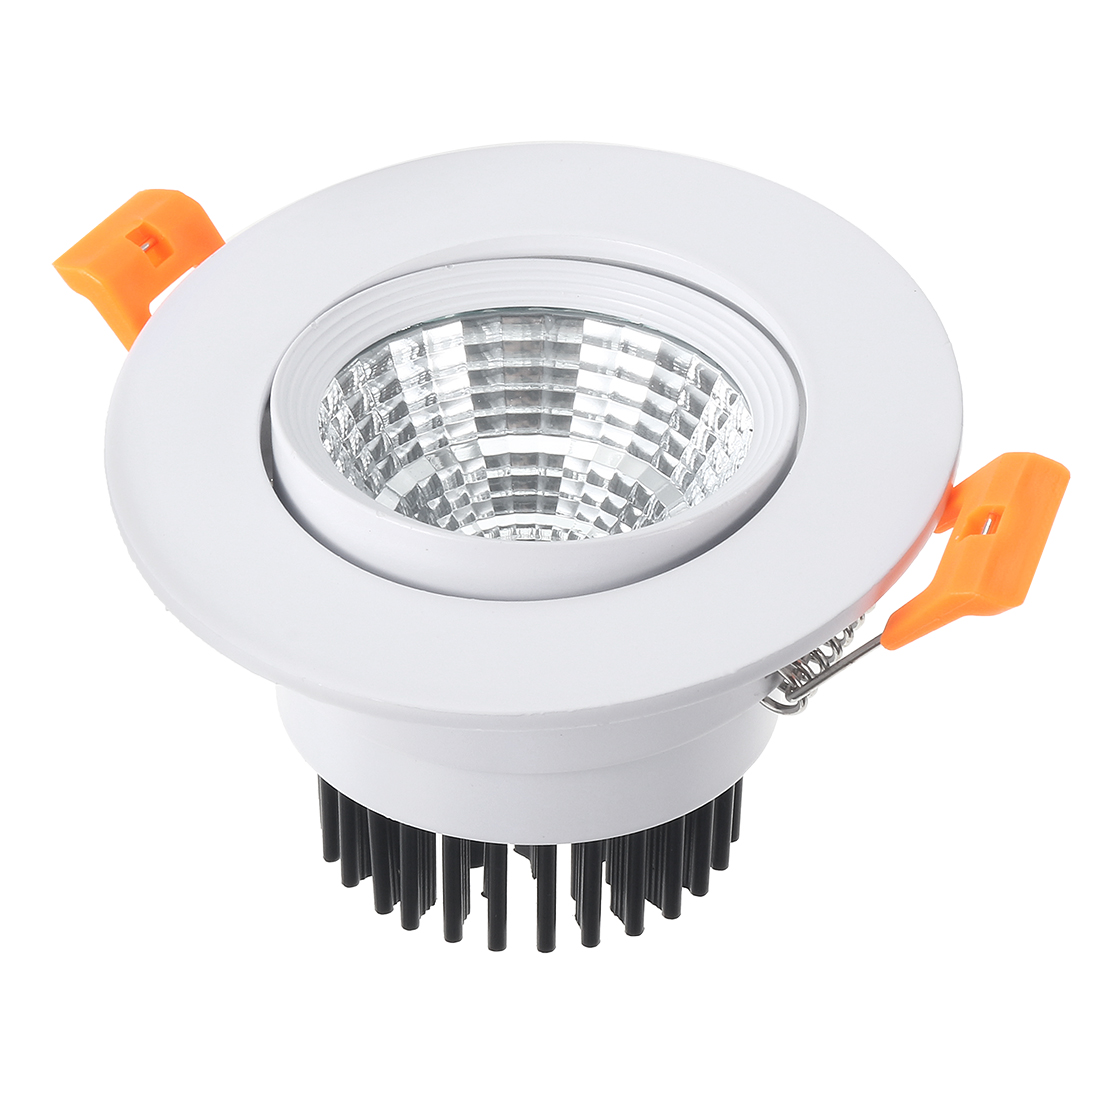 Unique Bargains 4 Pcs 68mm Dia. 3W COB Downlight Housing Recessed Ceiling Light Shell - image 2 de 5